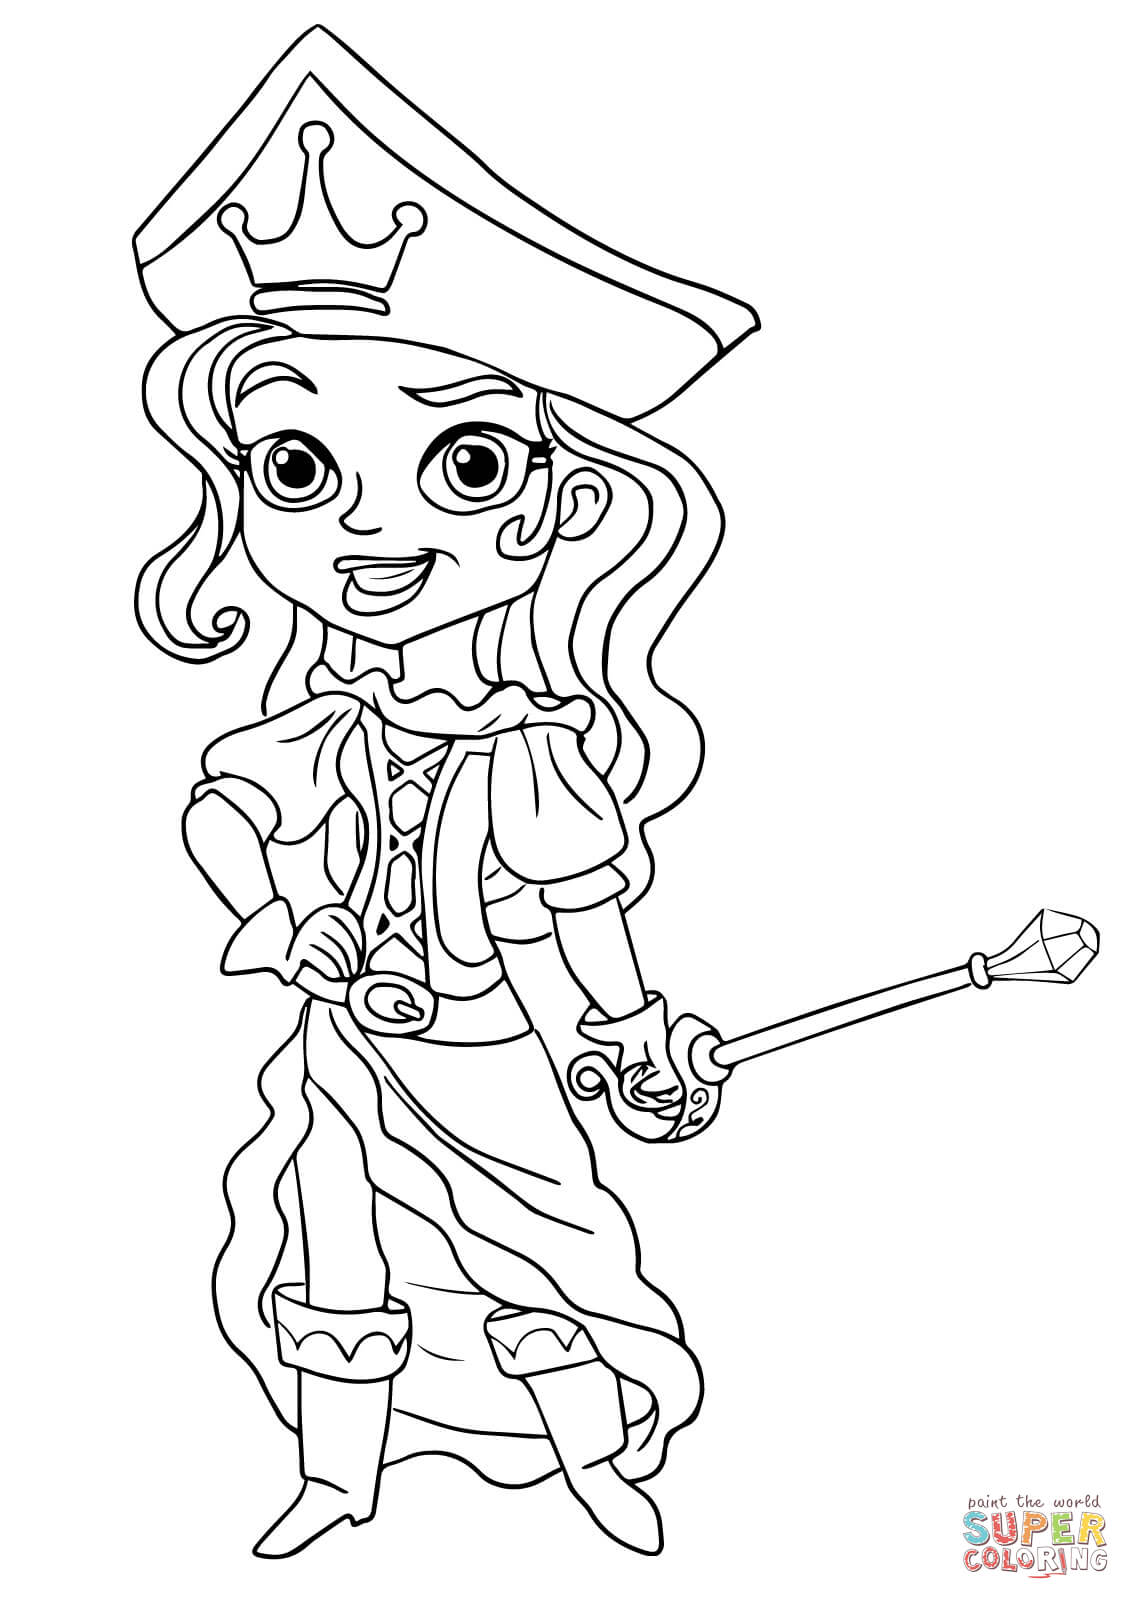 Jake And The Neverland Pirates Drawing At Getdrawings Free For